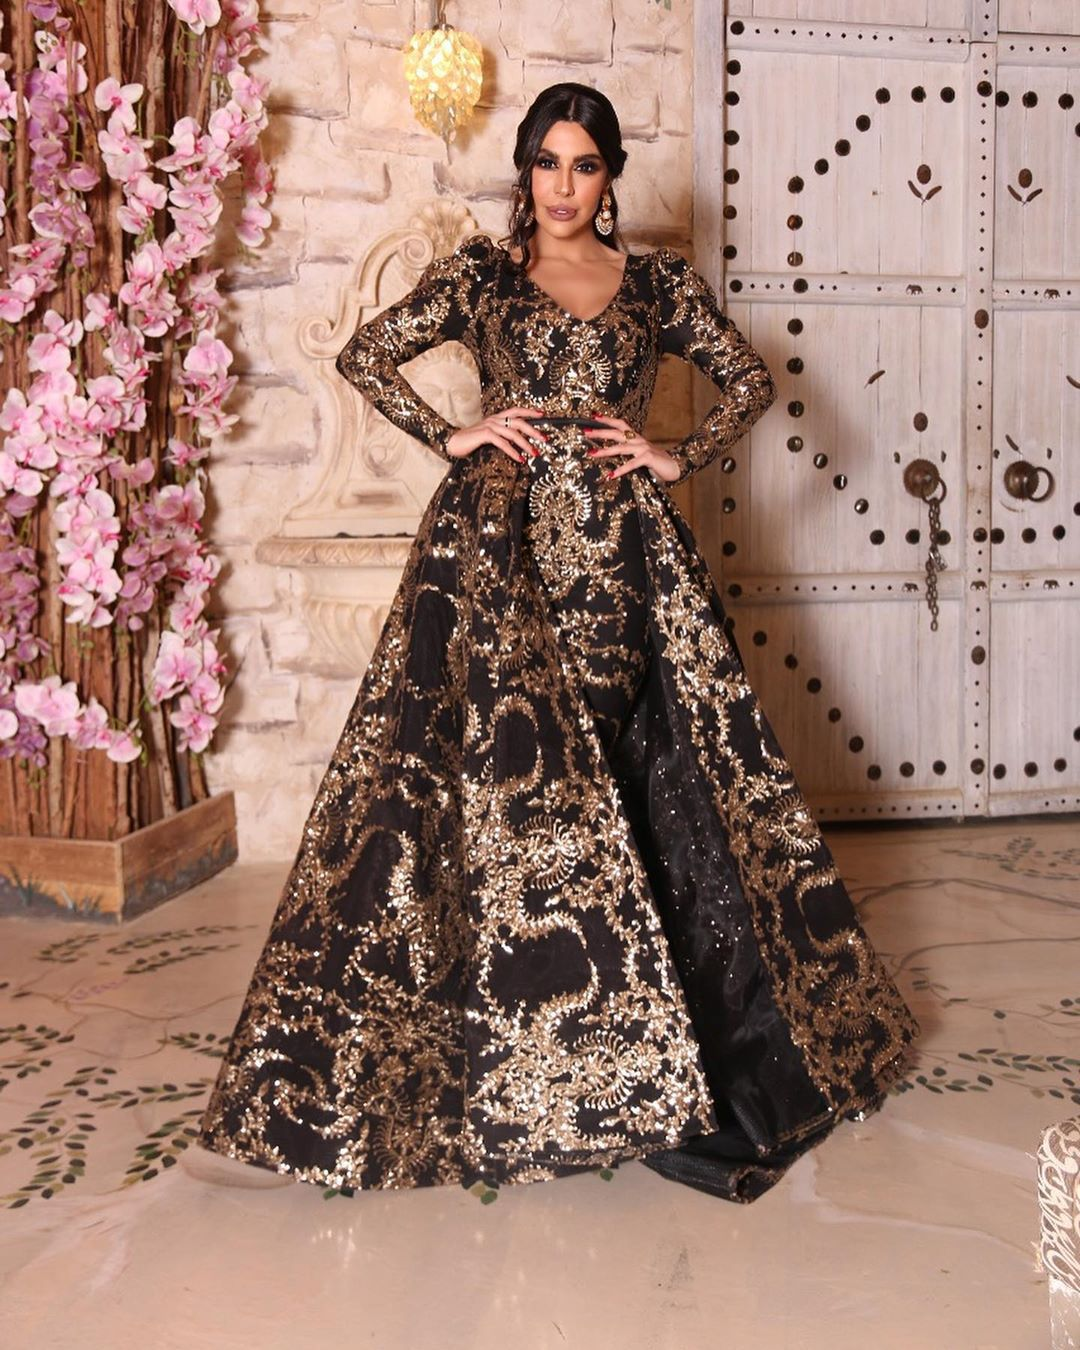 2020 New Europe and America foreign trade women's independent station hot stamping big sexy long skirt tailing party evening dress new